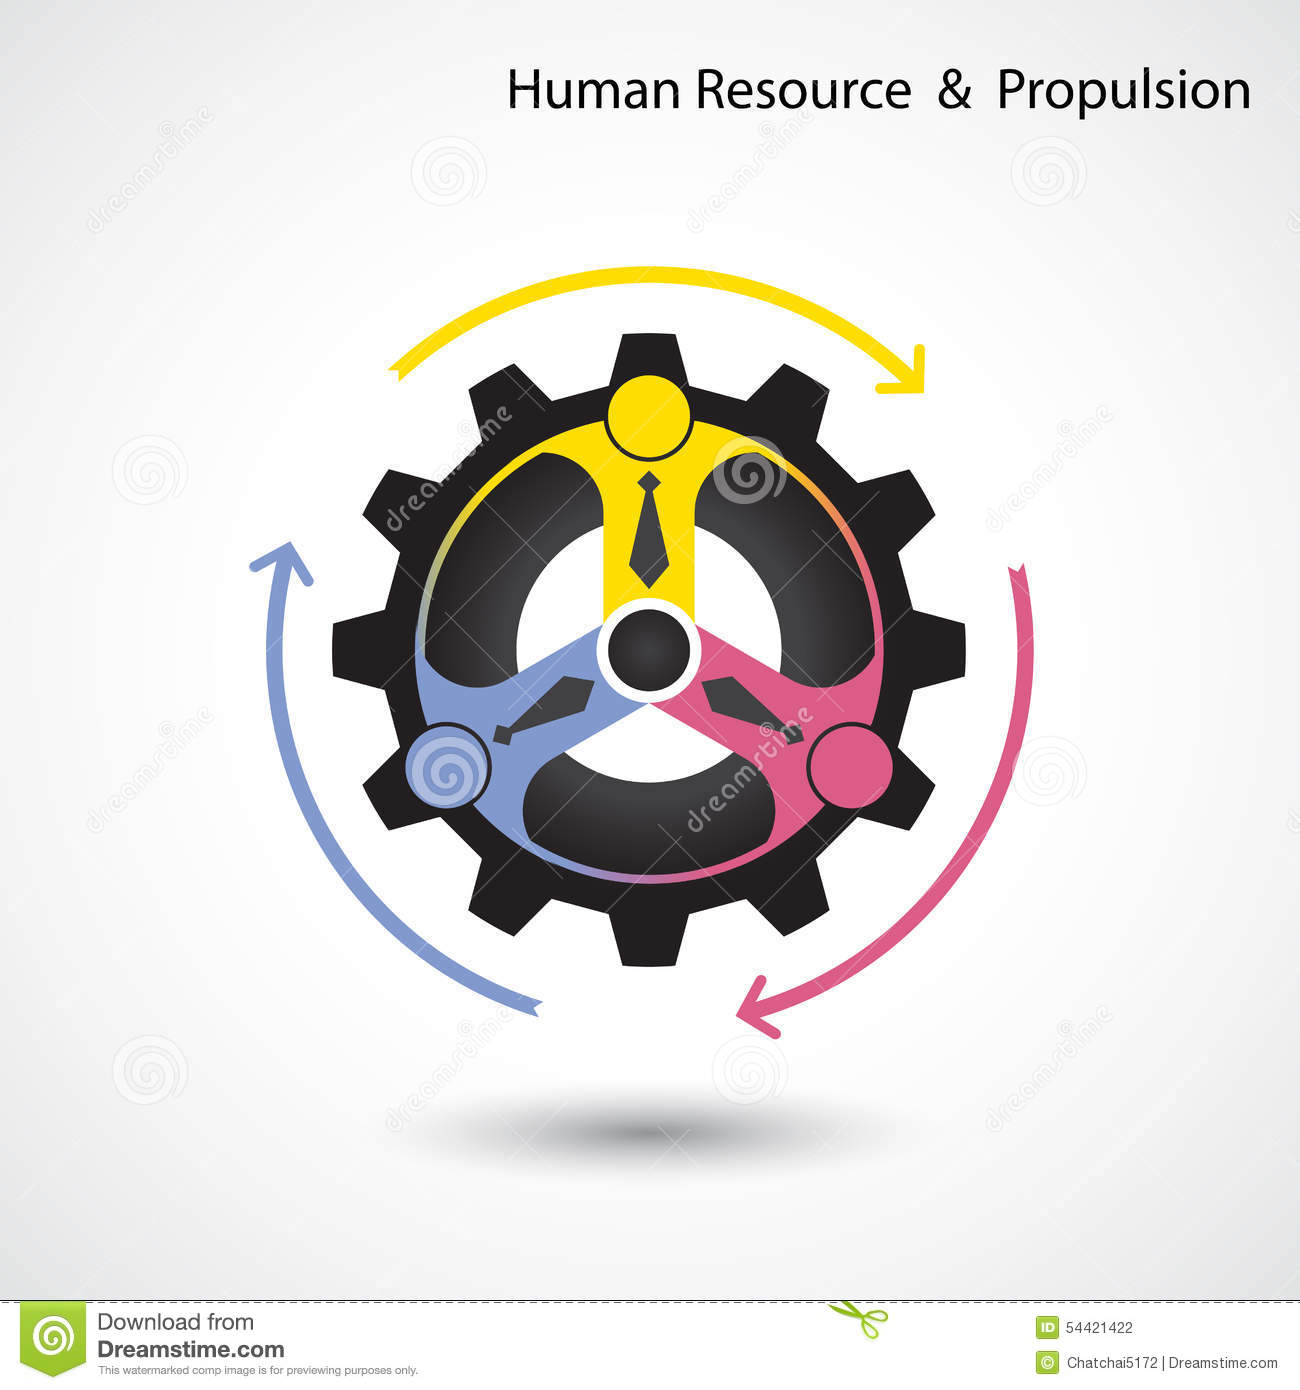 The Relationship Between Human Resource Practices And Business Strategy In A Business Organization